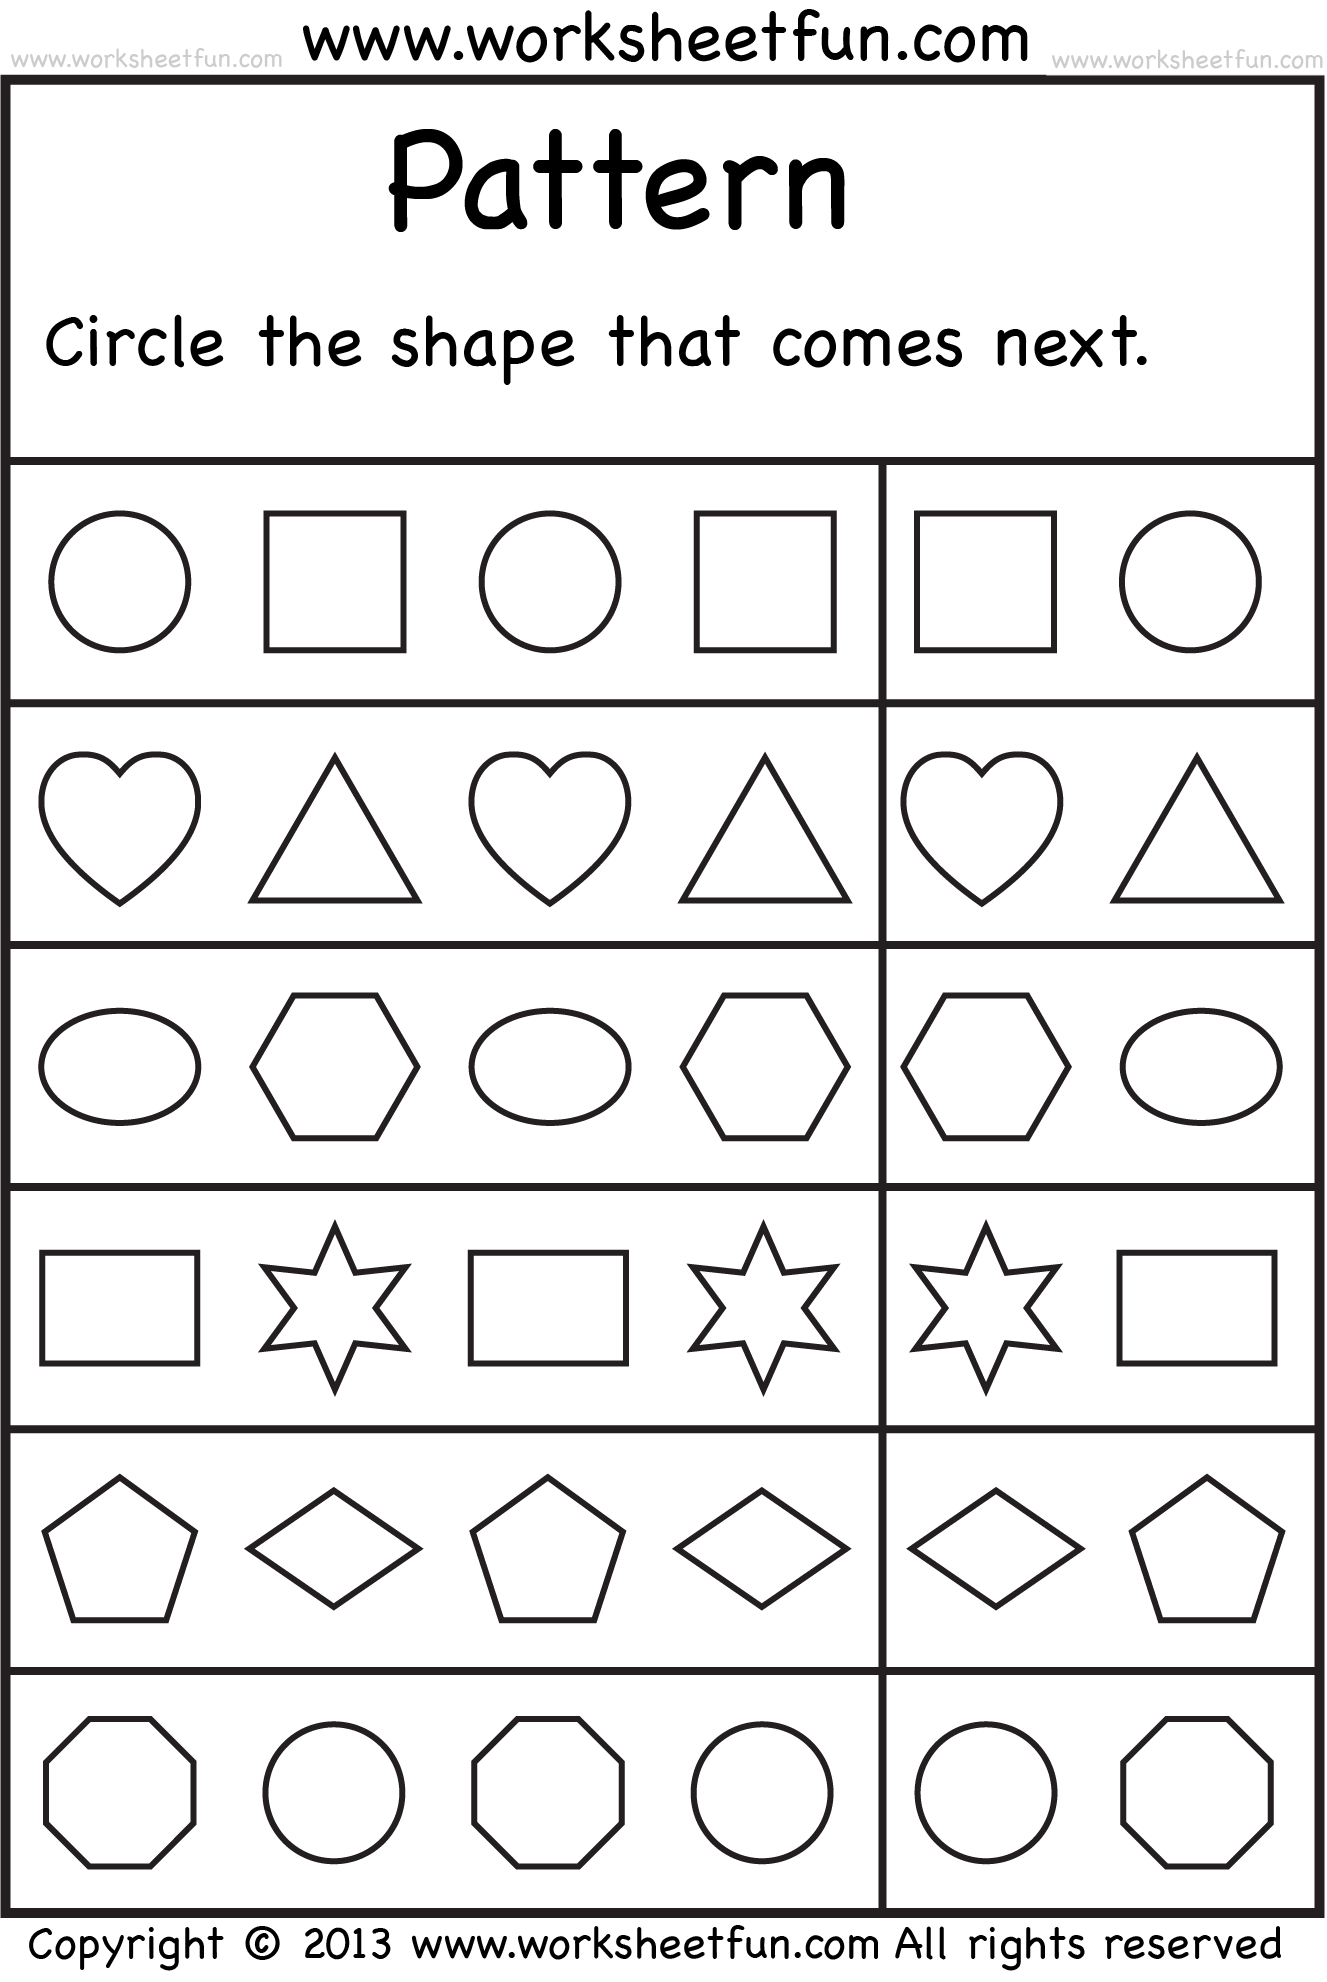 Weirdmailus  Wonderful  Images About School Worksheets On Pinterest  Number Words  With Handsome  Images About School Worksheets On Pinterest  Number Words Alphabet Worksheets And Free Printable Kindergarten Worksheets With Beautiful Core Curriculum Worksheets Also Ot Worksheets In Addition Volume Worksheets Grade  And Math Worksheets For Second Graders As Well As Fun Th Grade Worksheets Additionally Food Label Worksheets From Pinterestcom With Weirdmailus  Handsome  Images About School Worksheets On Pinterest  Number Words  With Beautiful  Images About School Worksheets On Pinterest  Number Words Alphabet Worksheets And Free Printable Kindergarten Worksheets And Wonderful Core Curriculum Worksheets Also Ot Worksheets In Addition Volume Worksheets Grade  From Pinterestcom